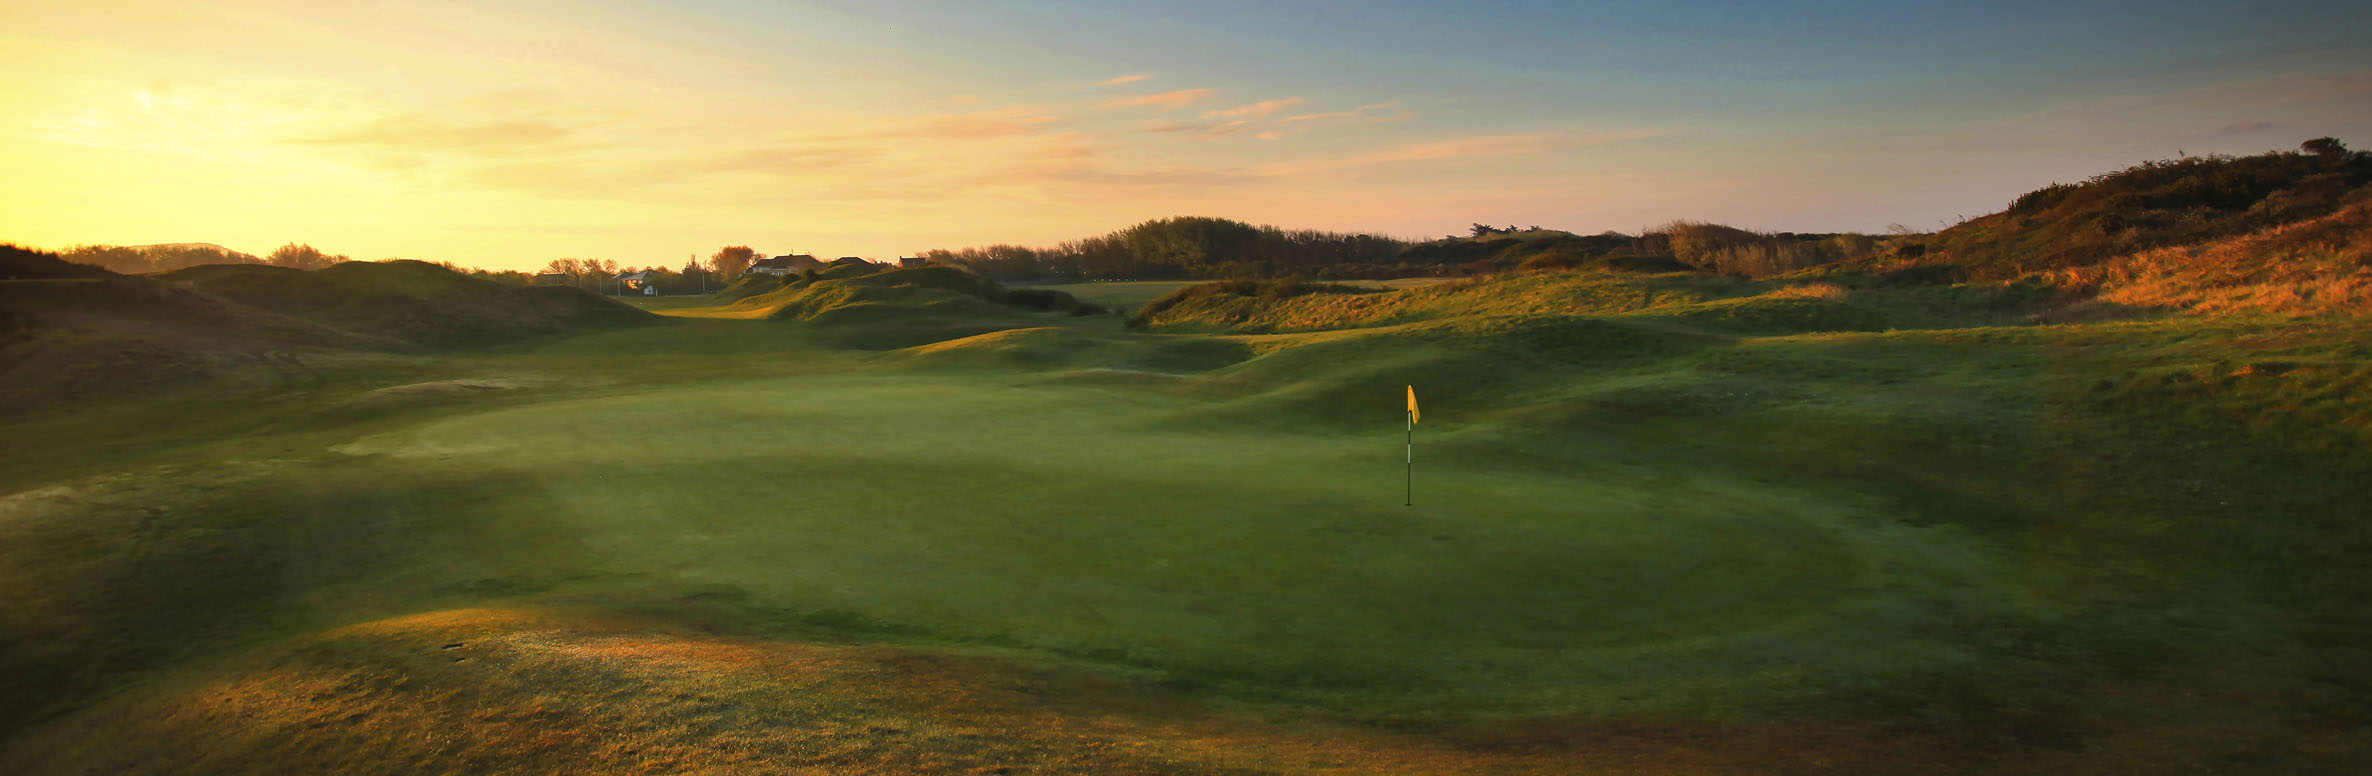 Burnham and Berrow Golf Club Championship Course